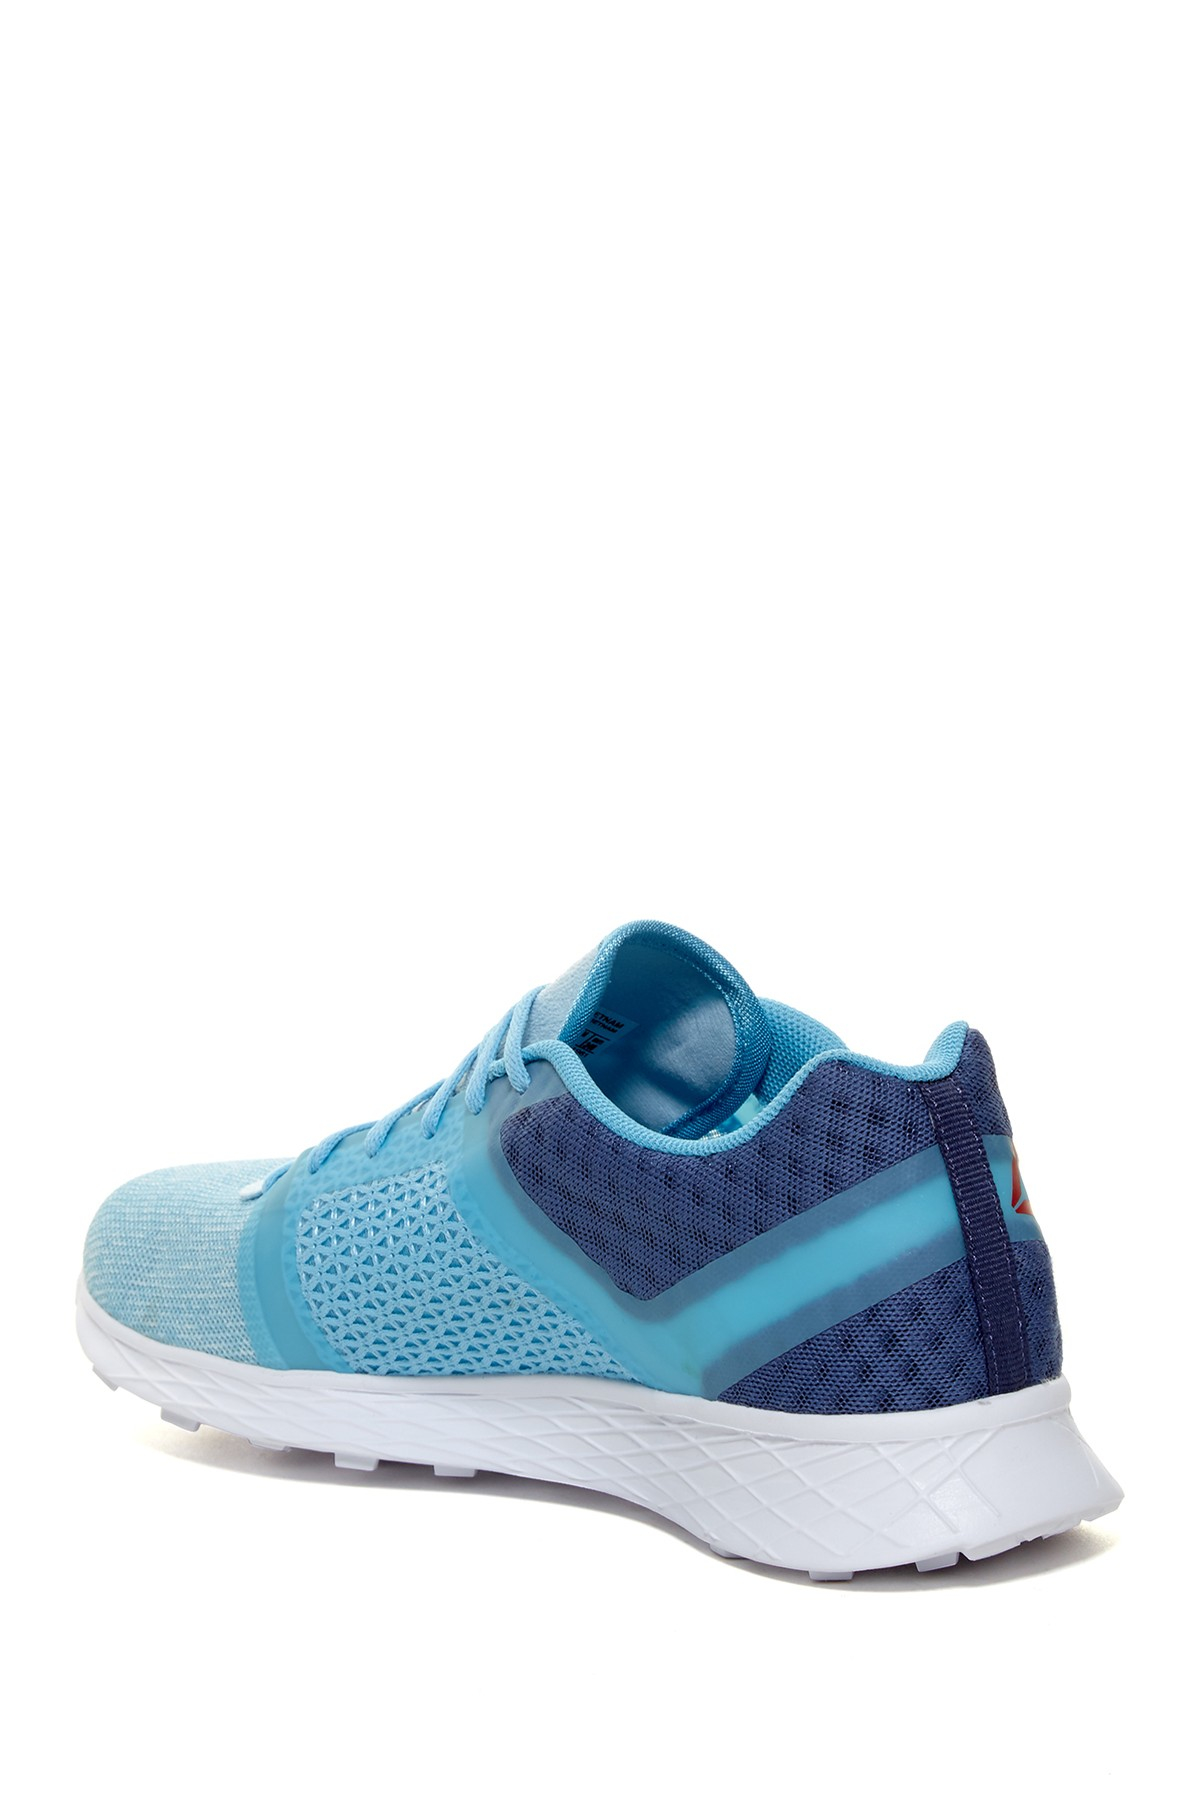 Reebok Top Speed Blue Running Shoes